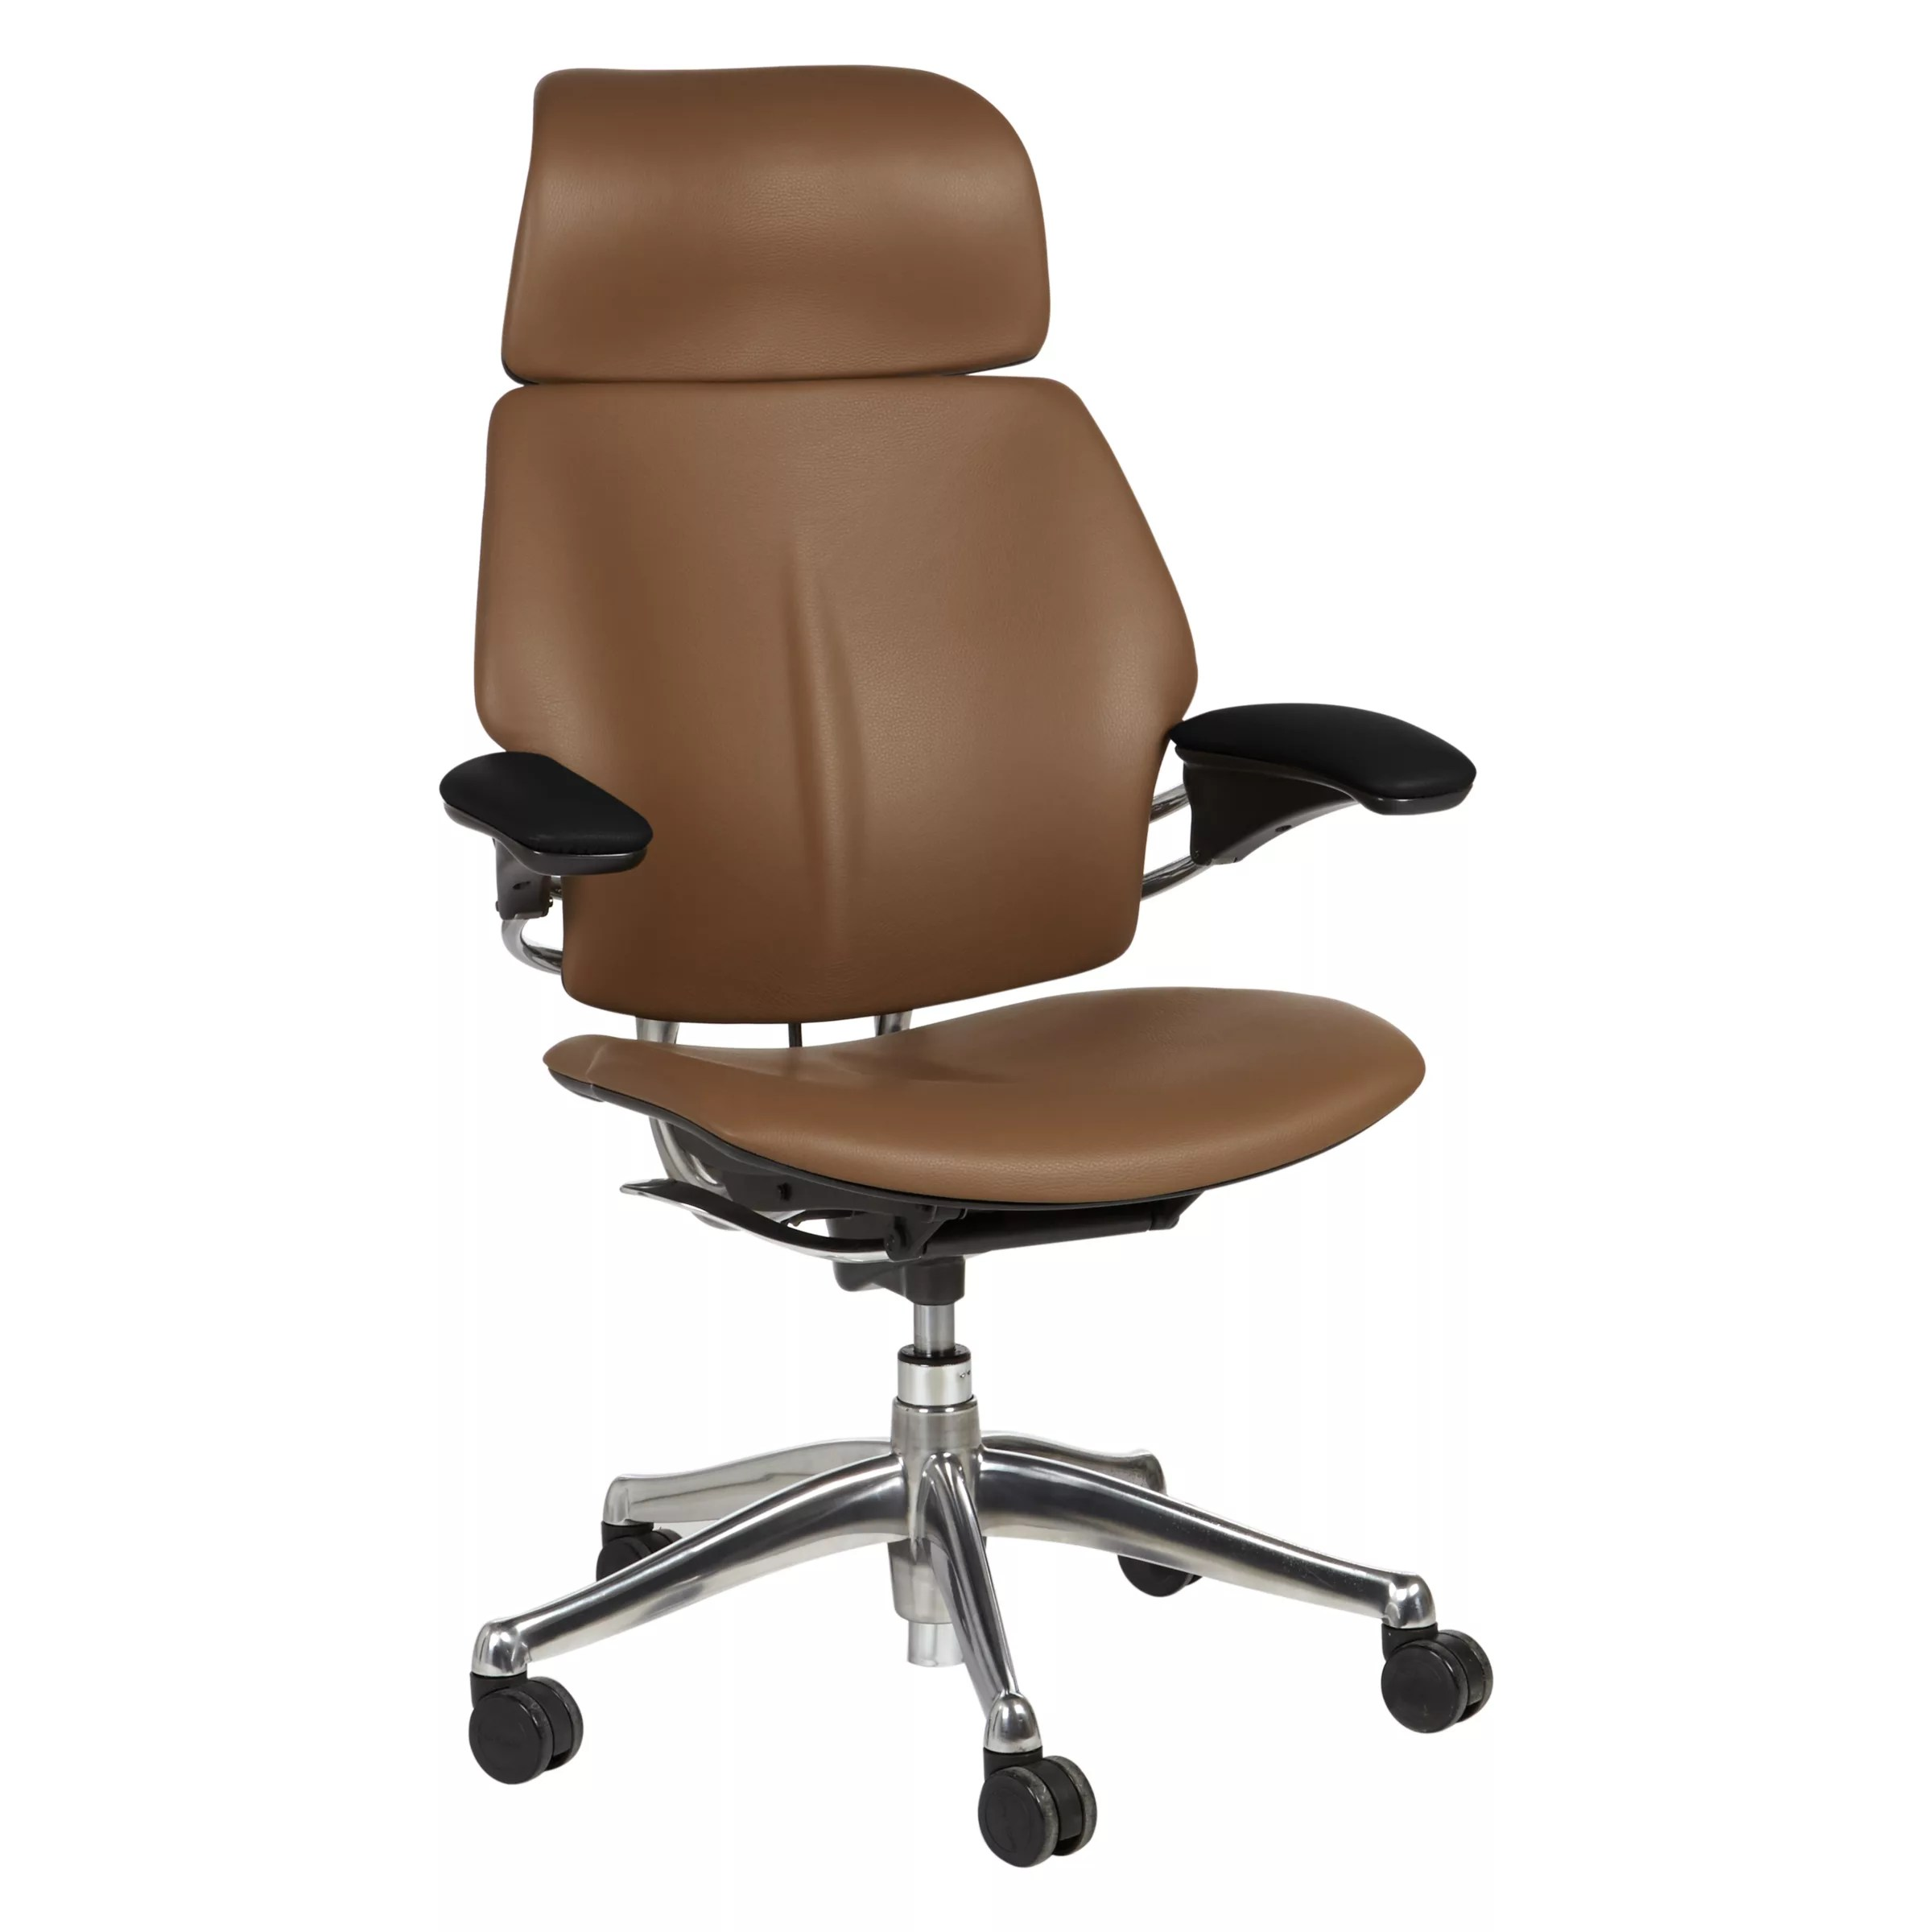 Freedom Furniture Head Office Humanscale Freedom Office Chair With Headrest At John Lewis Partners